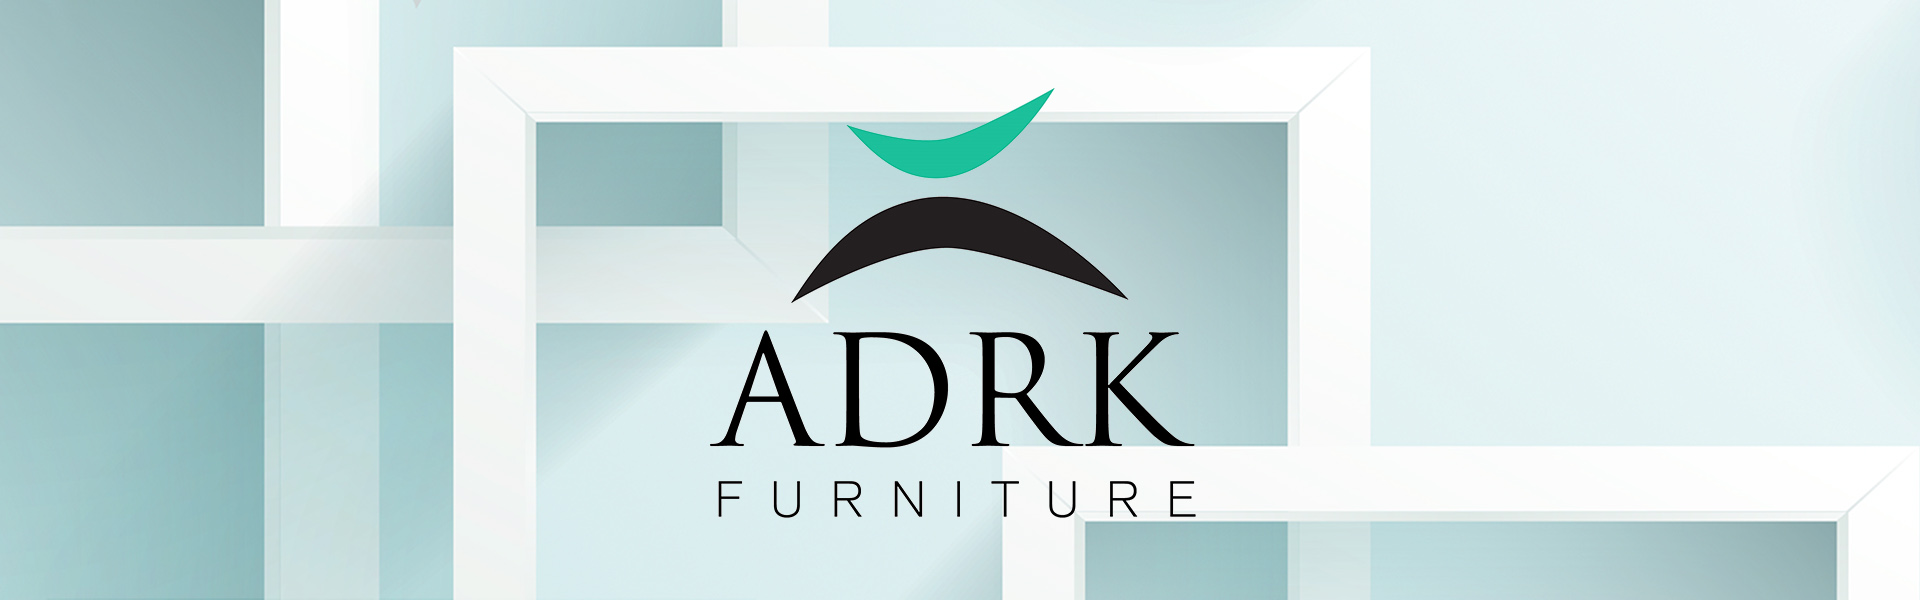 Kapp ADRK Furniture Tokio, must/valge                             ADRK Furniture